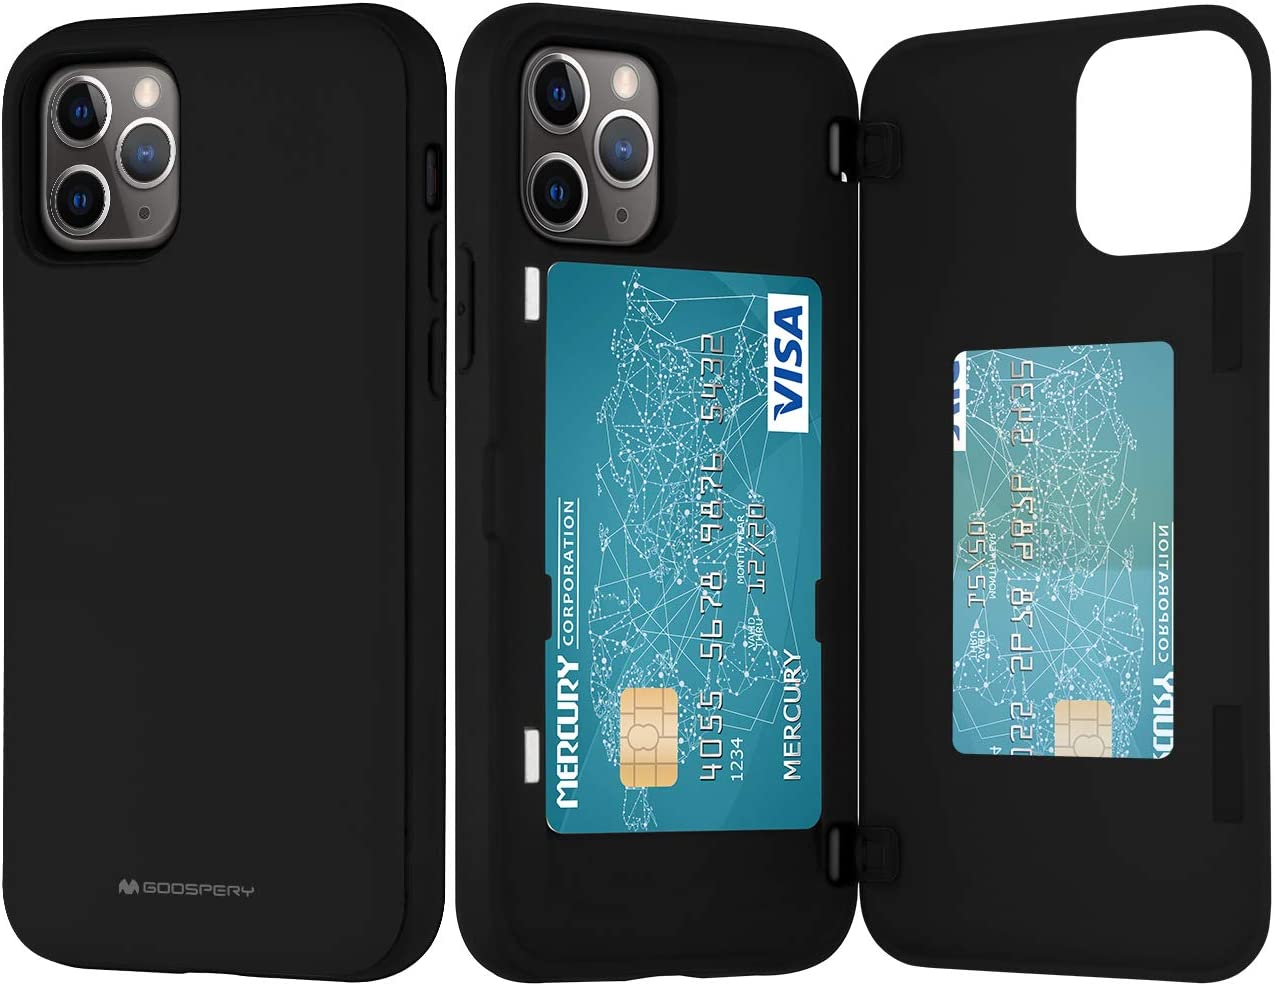 Goospery iPhone 11 Pro Wallet Case with Card Holder, Protective Dual Layer Bumper Phone Case (Black) IP11P-MDB-BLK